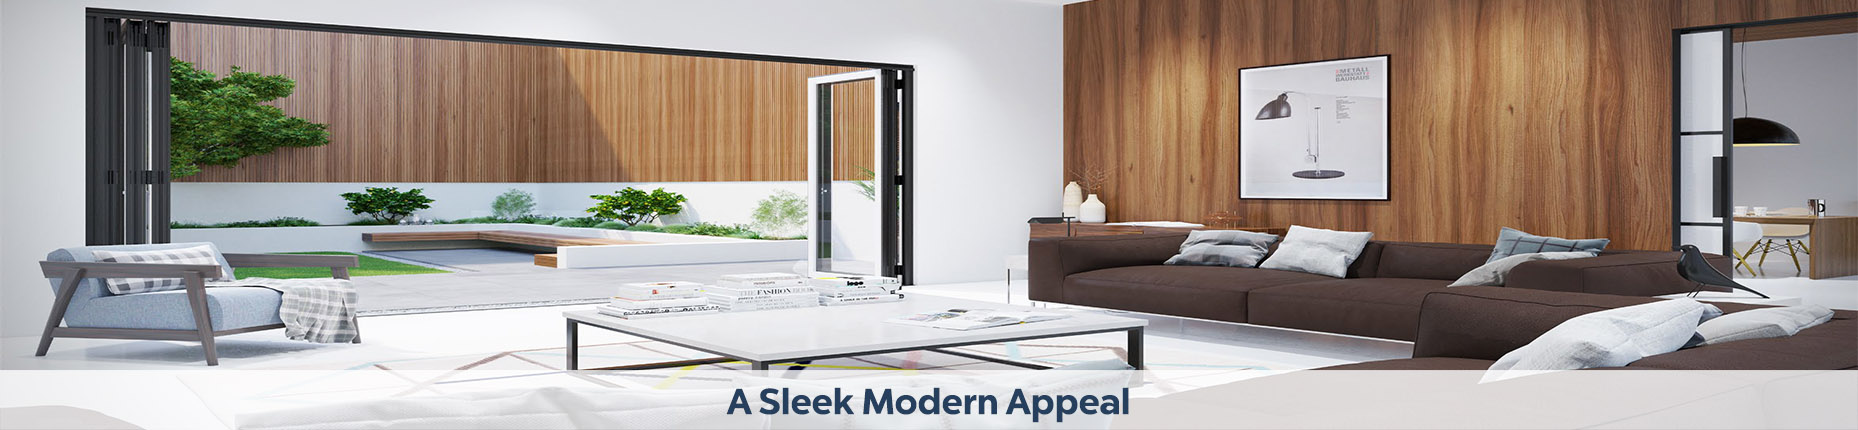 Sleek appealing bifold doors